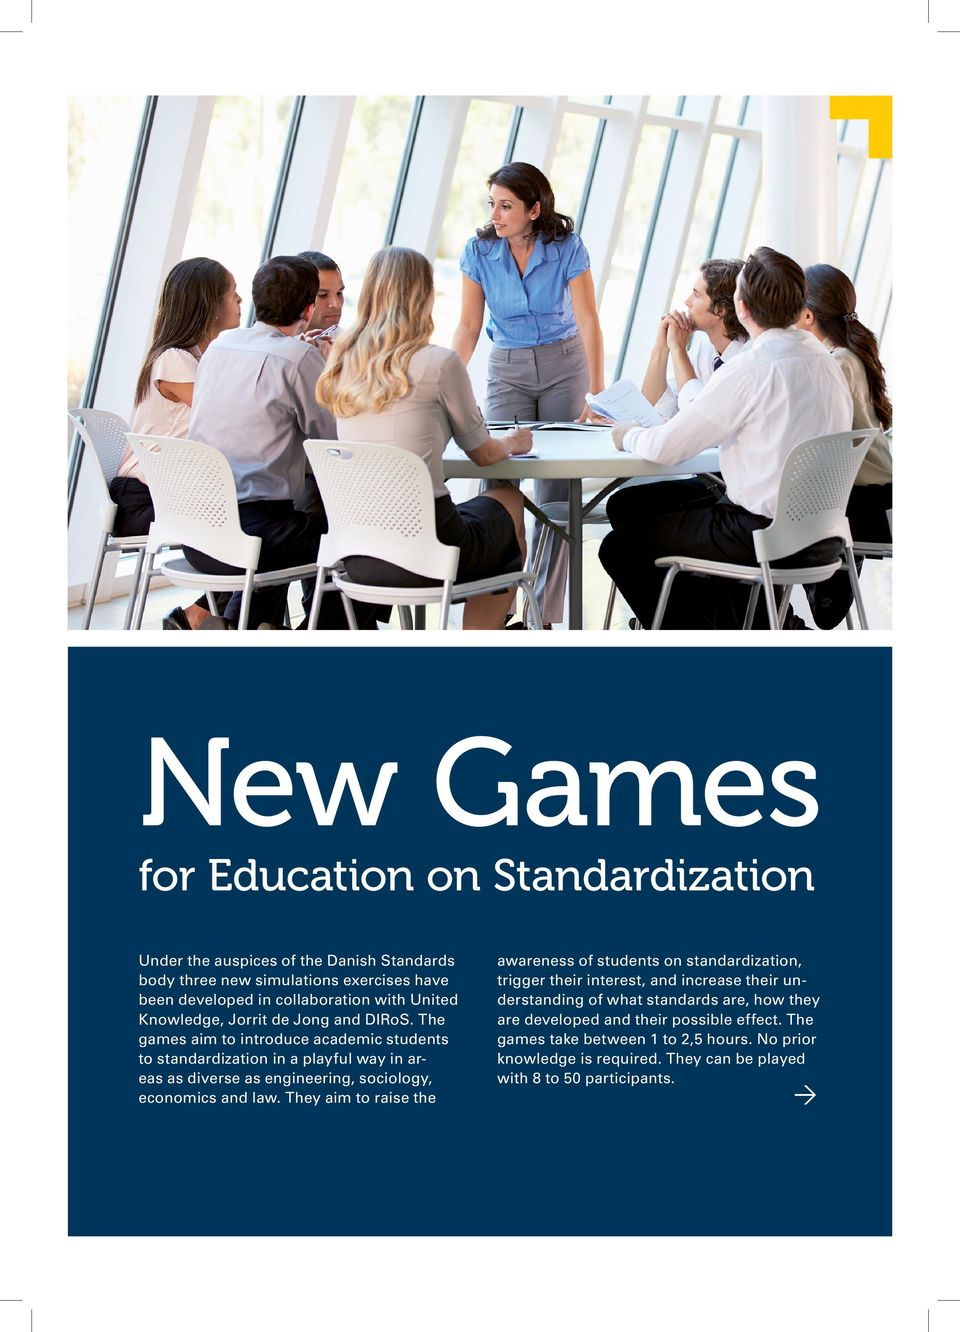 The games aim to introduce academic students to standardization in a playful way in areas as diverse as engineering, sociology, economics and law.